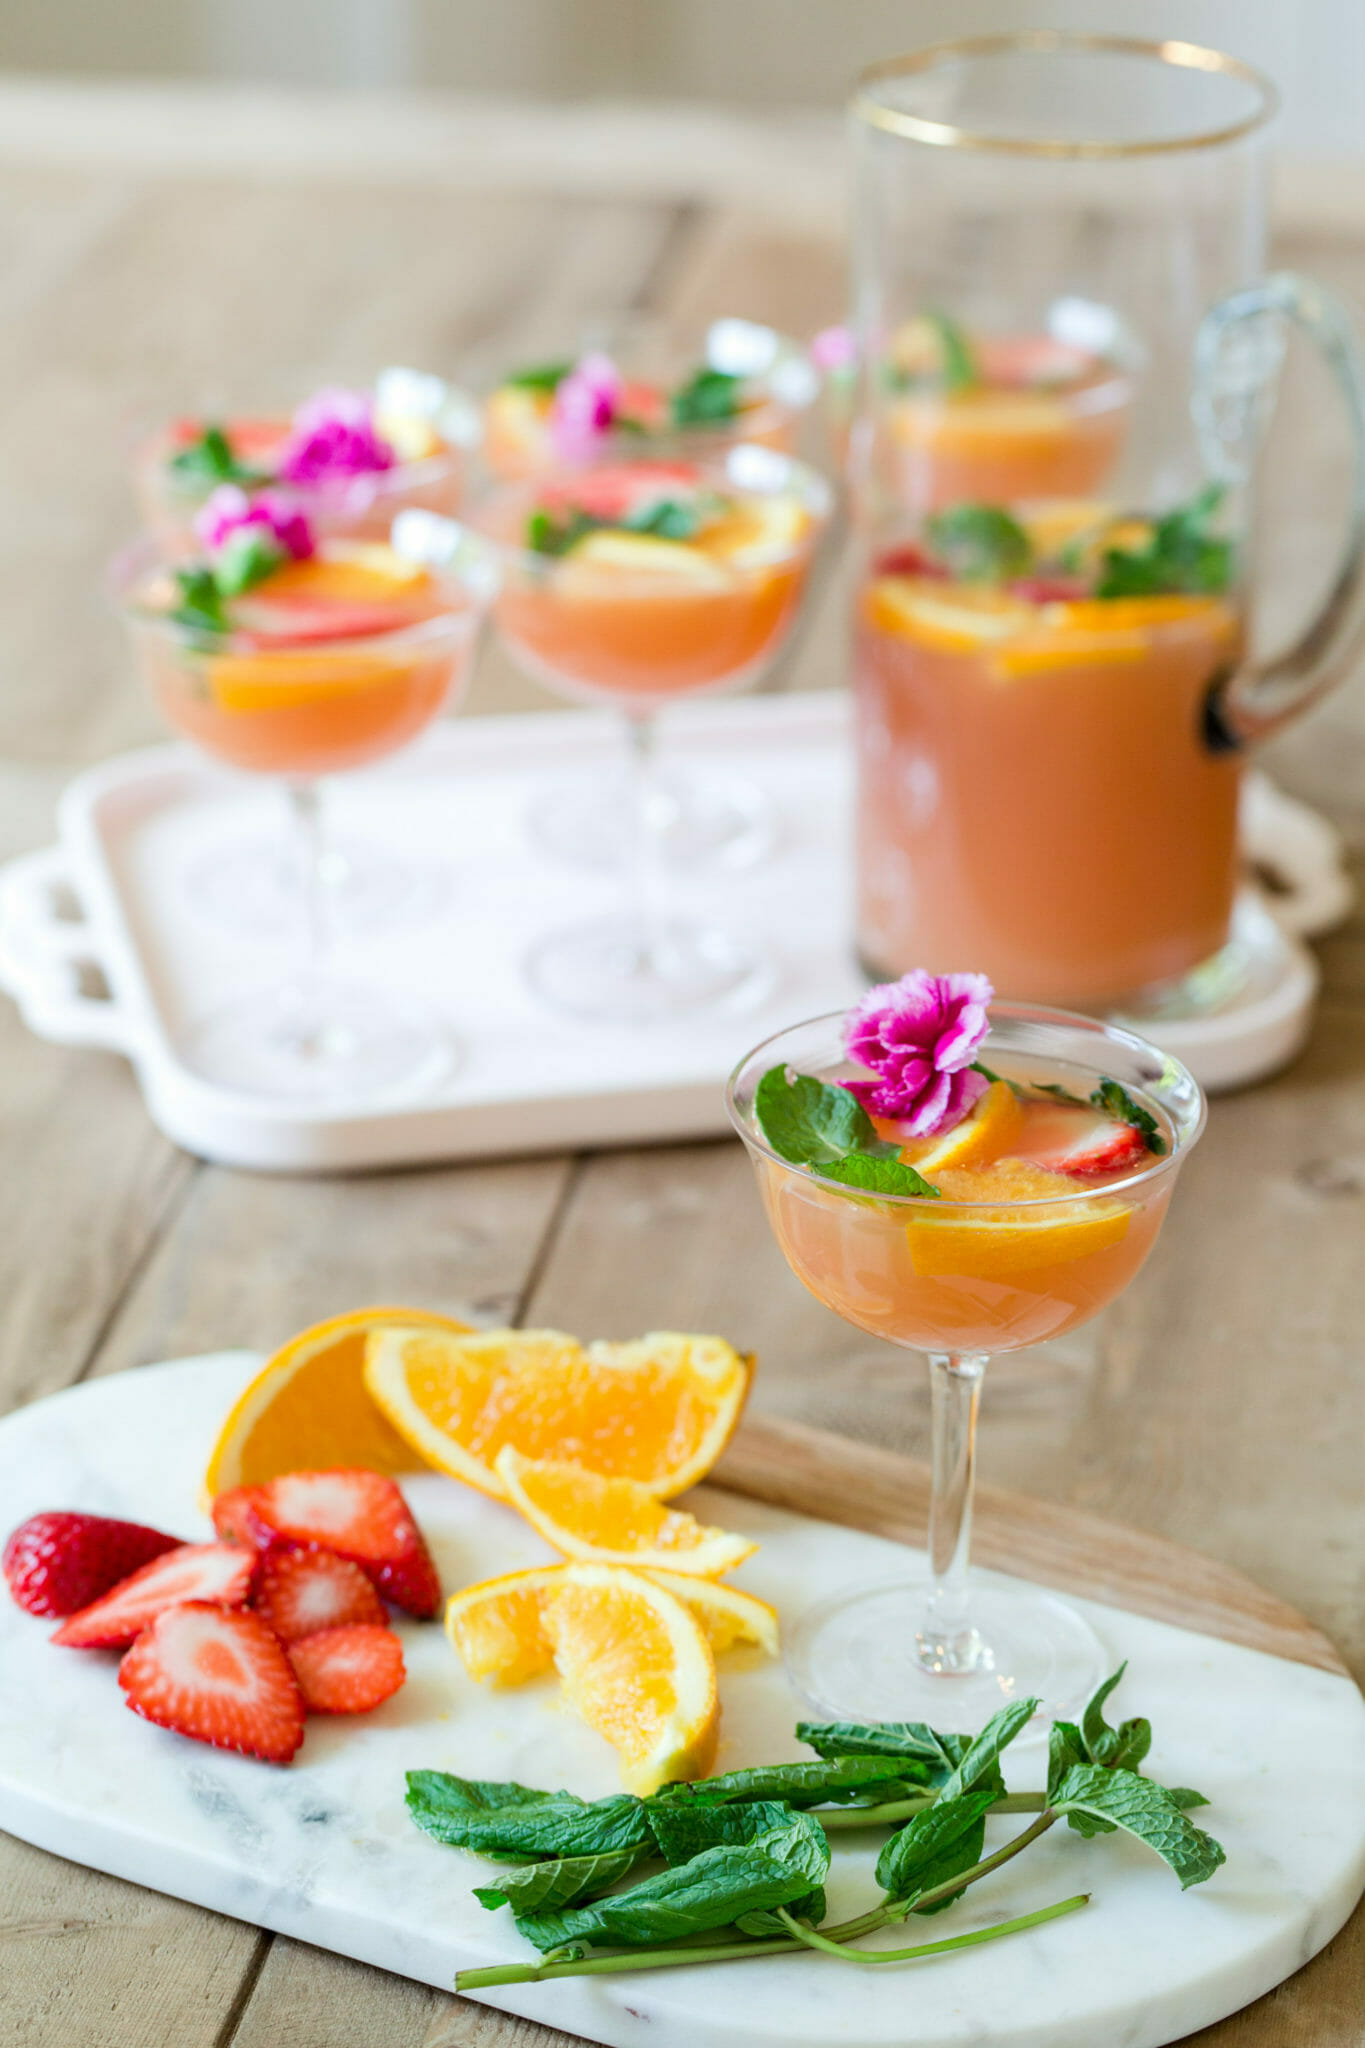 Brunch Punch Champagne Cocktail | homemade cocktail recipes | summer cocktails | easy cocktail recipes | brunch drink recipes || JennyCookies.com #recipe #brunch #cocktail #champagnecocktail #drinkrecipes #summerdrinks #summercocktail #jennycookies